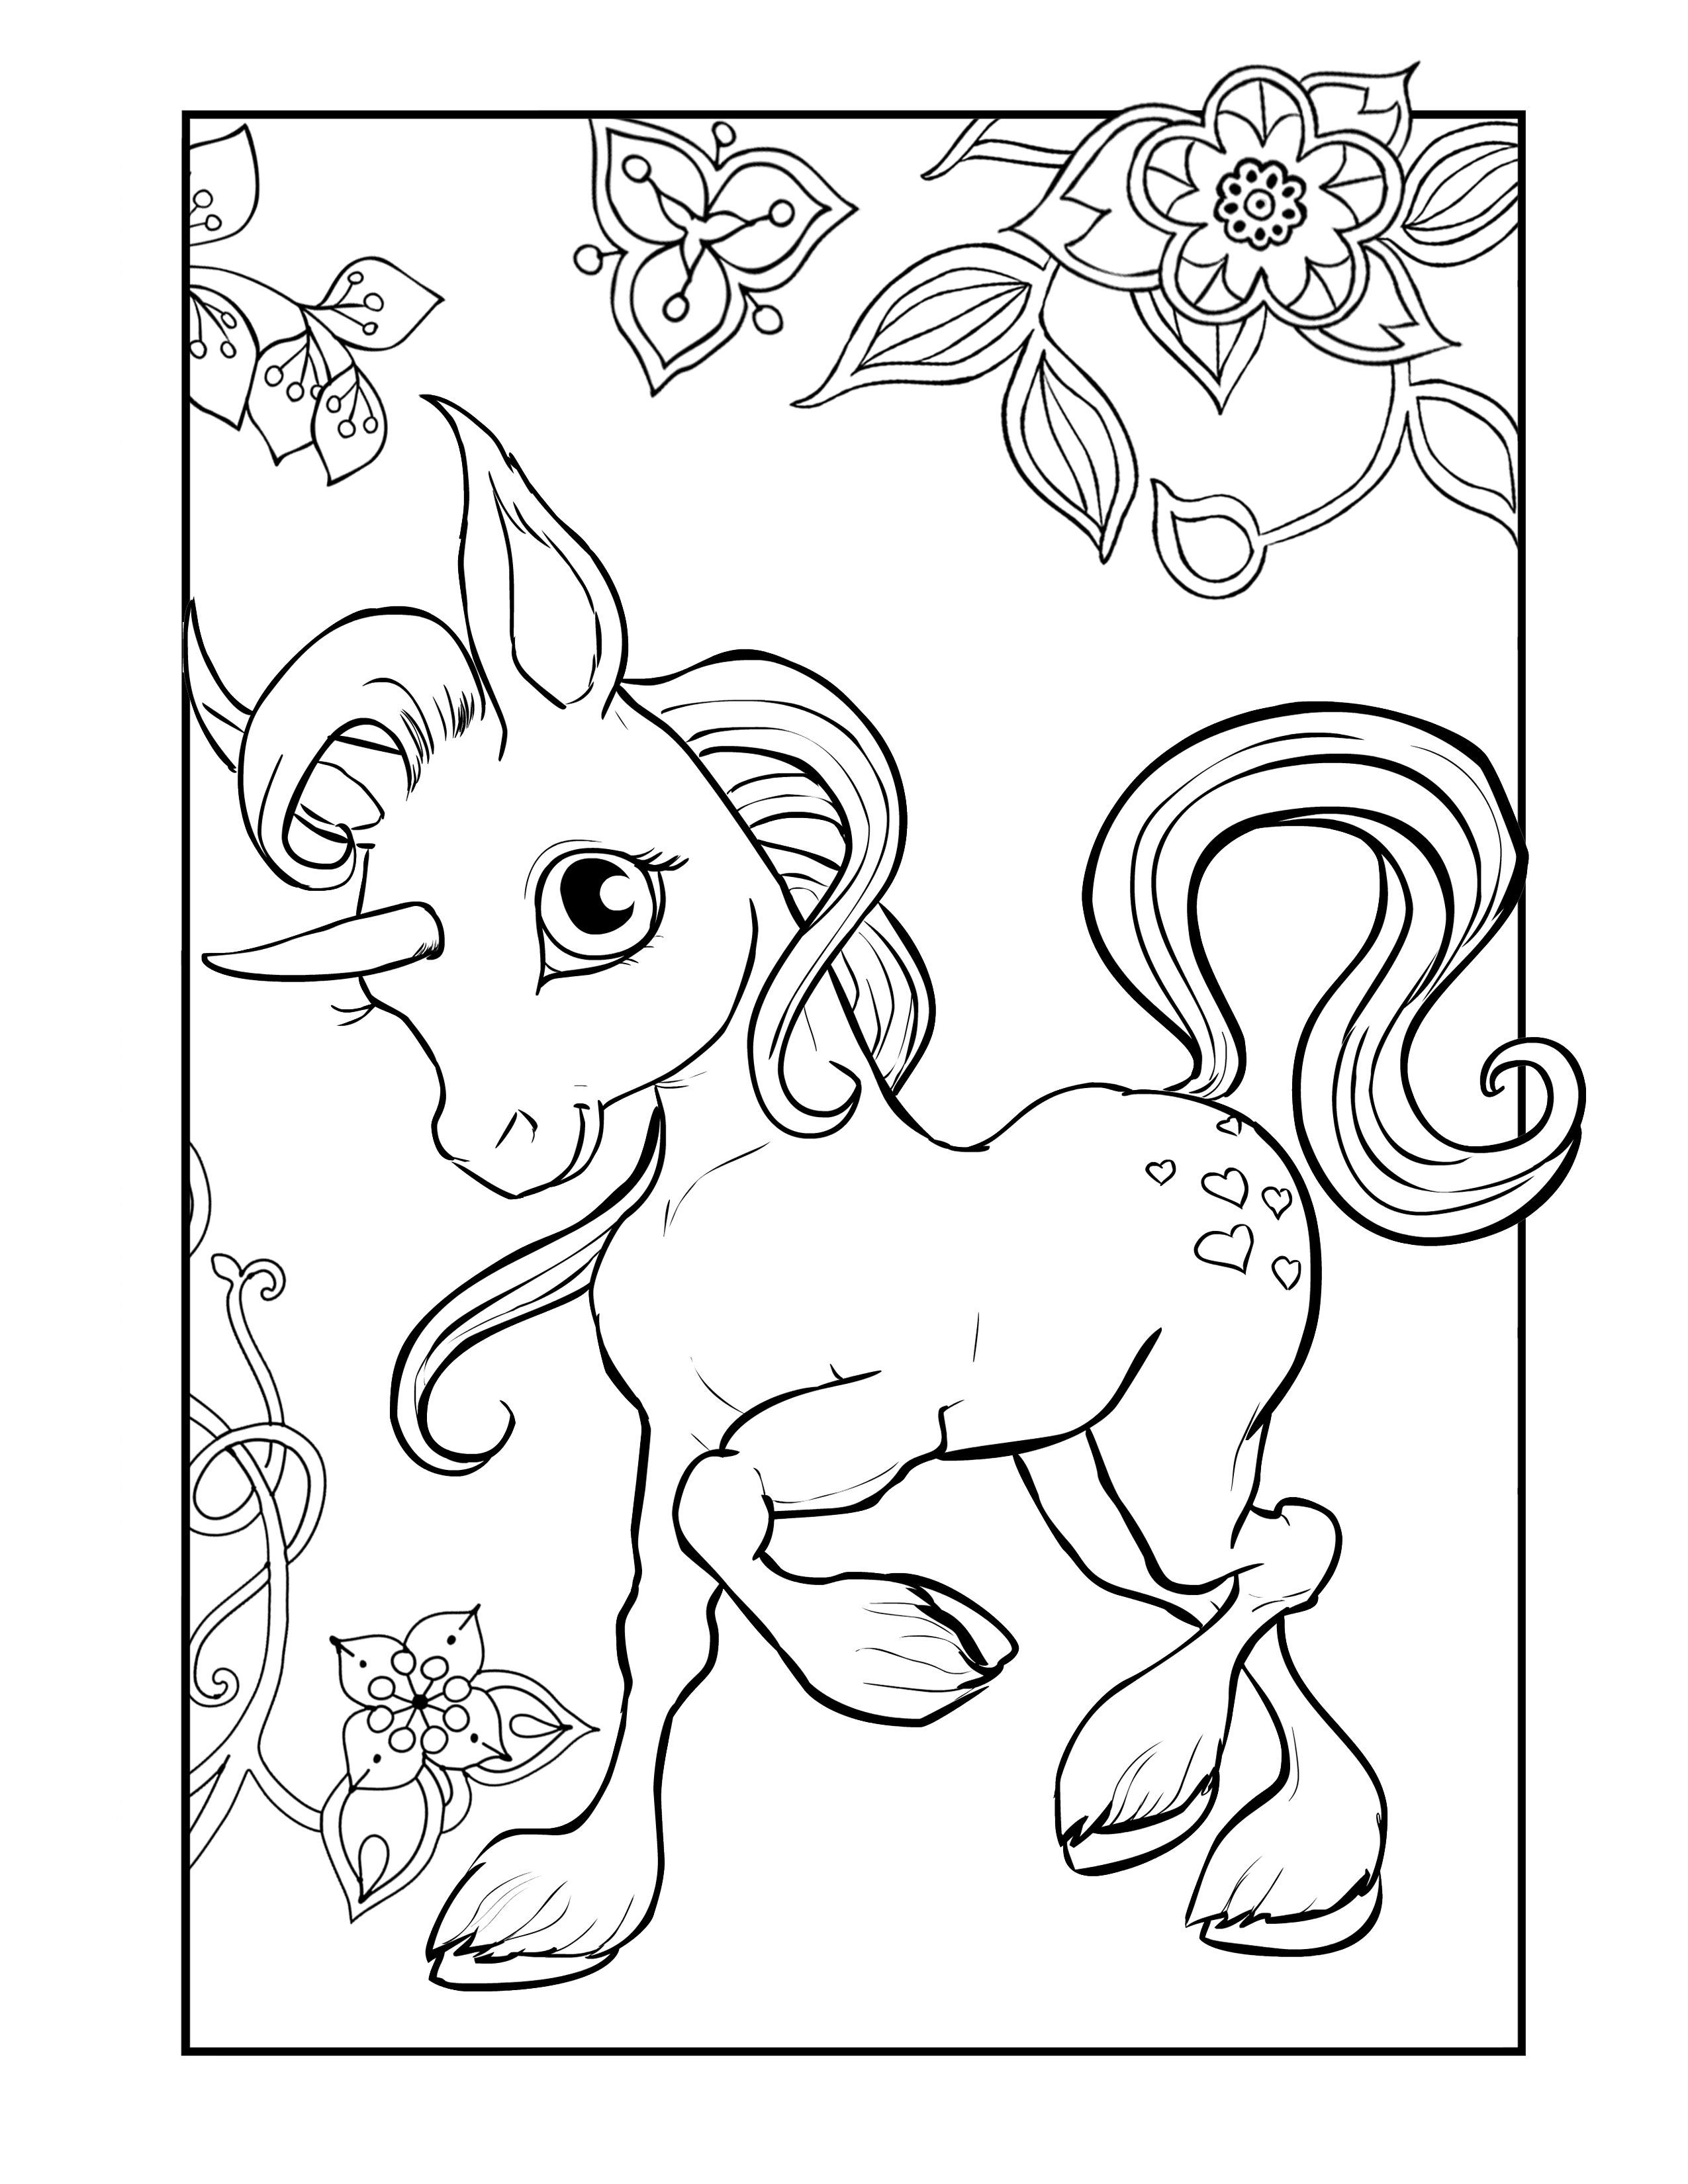 Unicorn Coloring Download Downloadable Unicorn Coloring Pages Unicorn Coloring Book Unicorn Coloring Pages Hello Kitty Colouring Pages Coloring Book Download